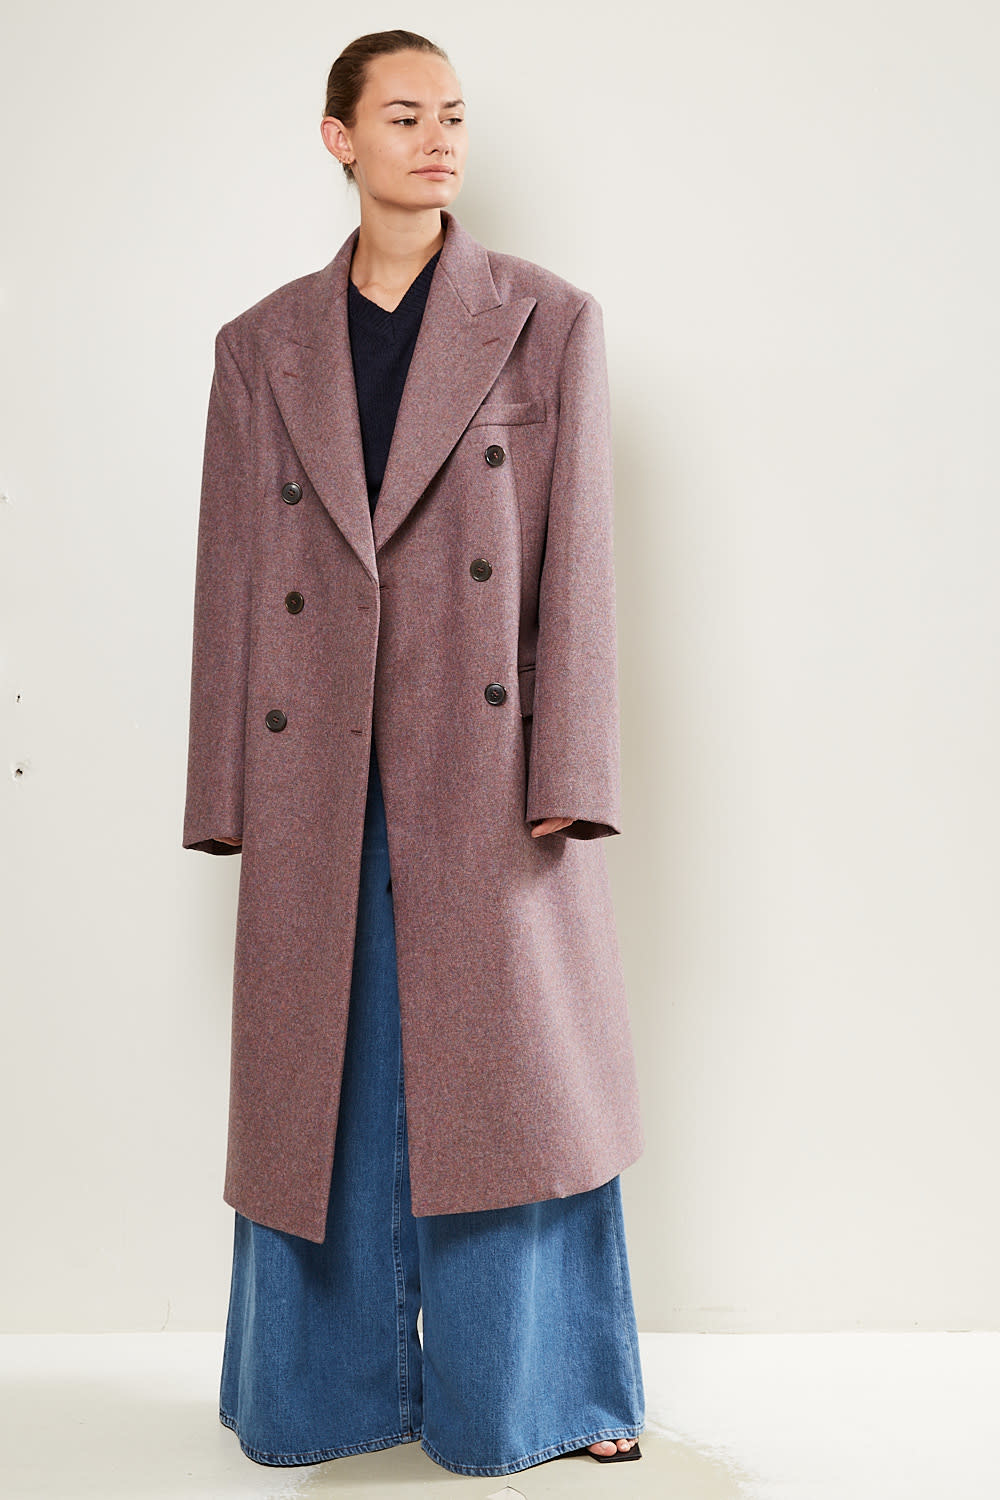 Maison Margiela - double-breasted tailored wool coat